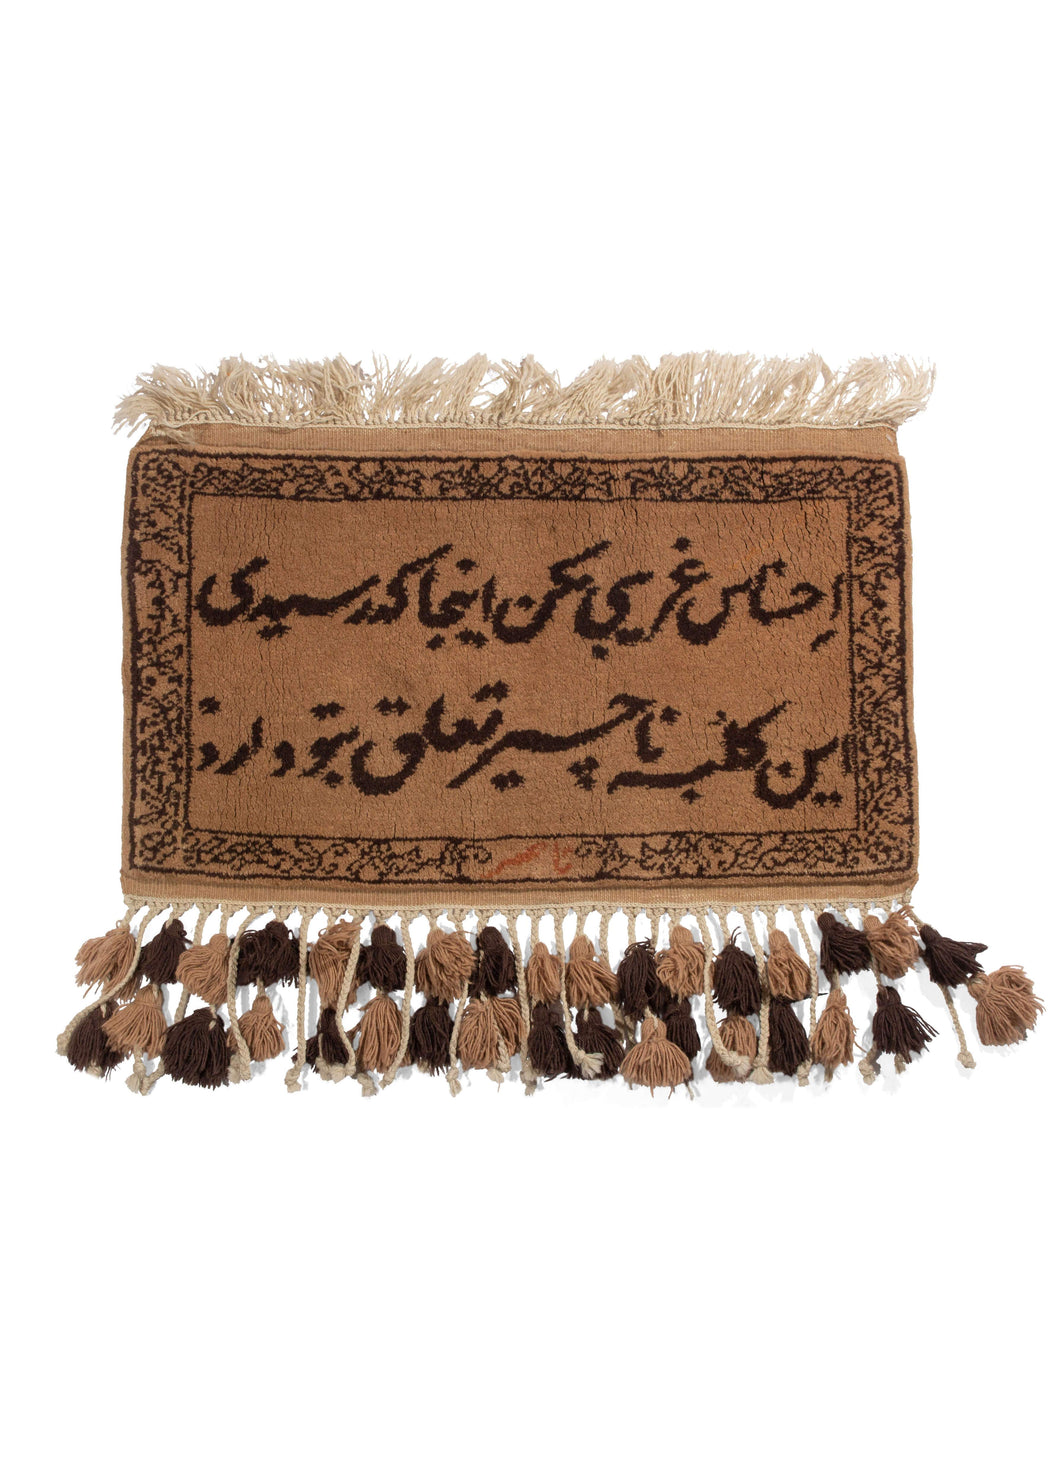 Urdu Welcome Mat with Fringes